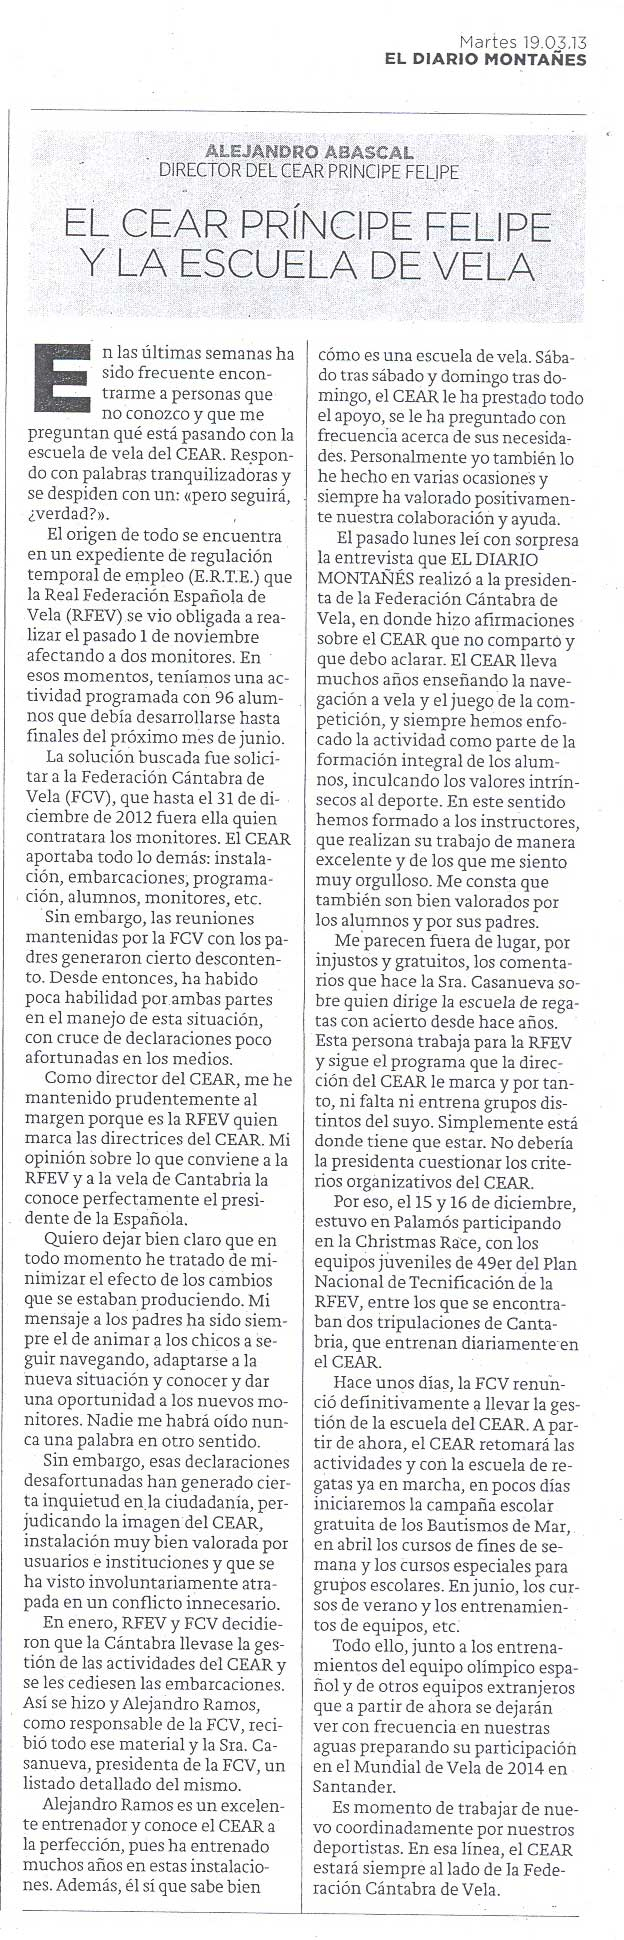 2013-03-19-carta-abascal-so